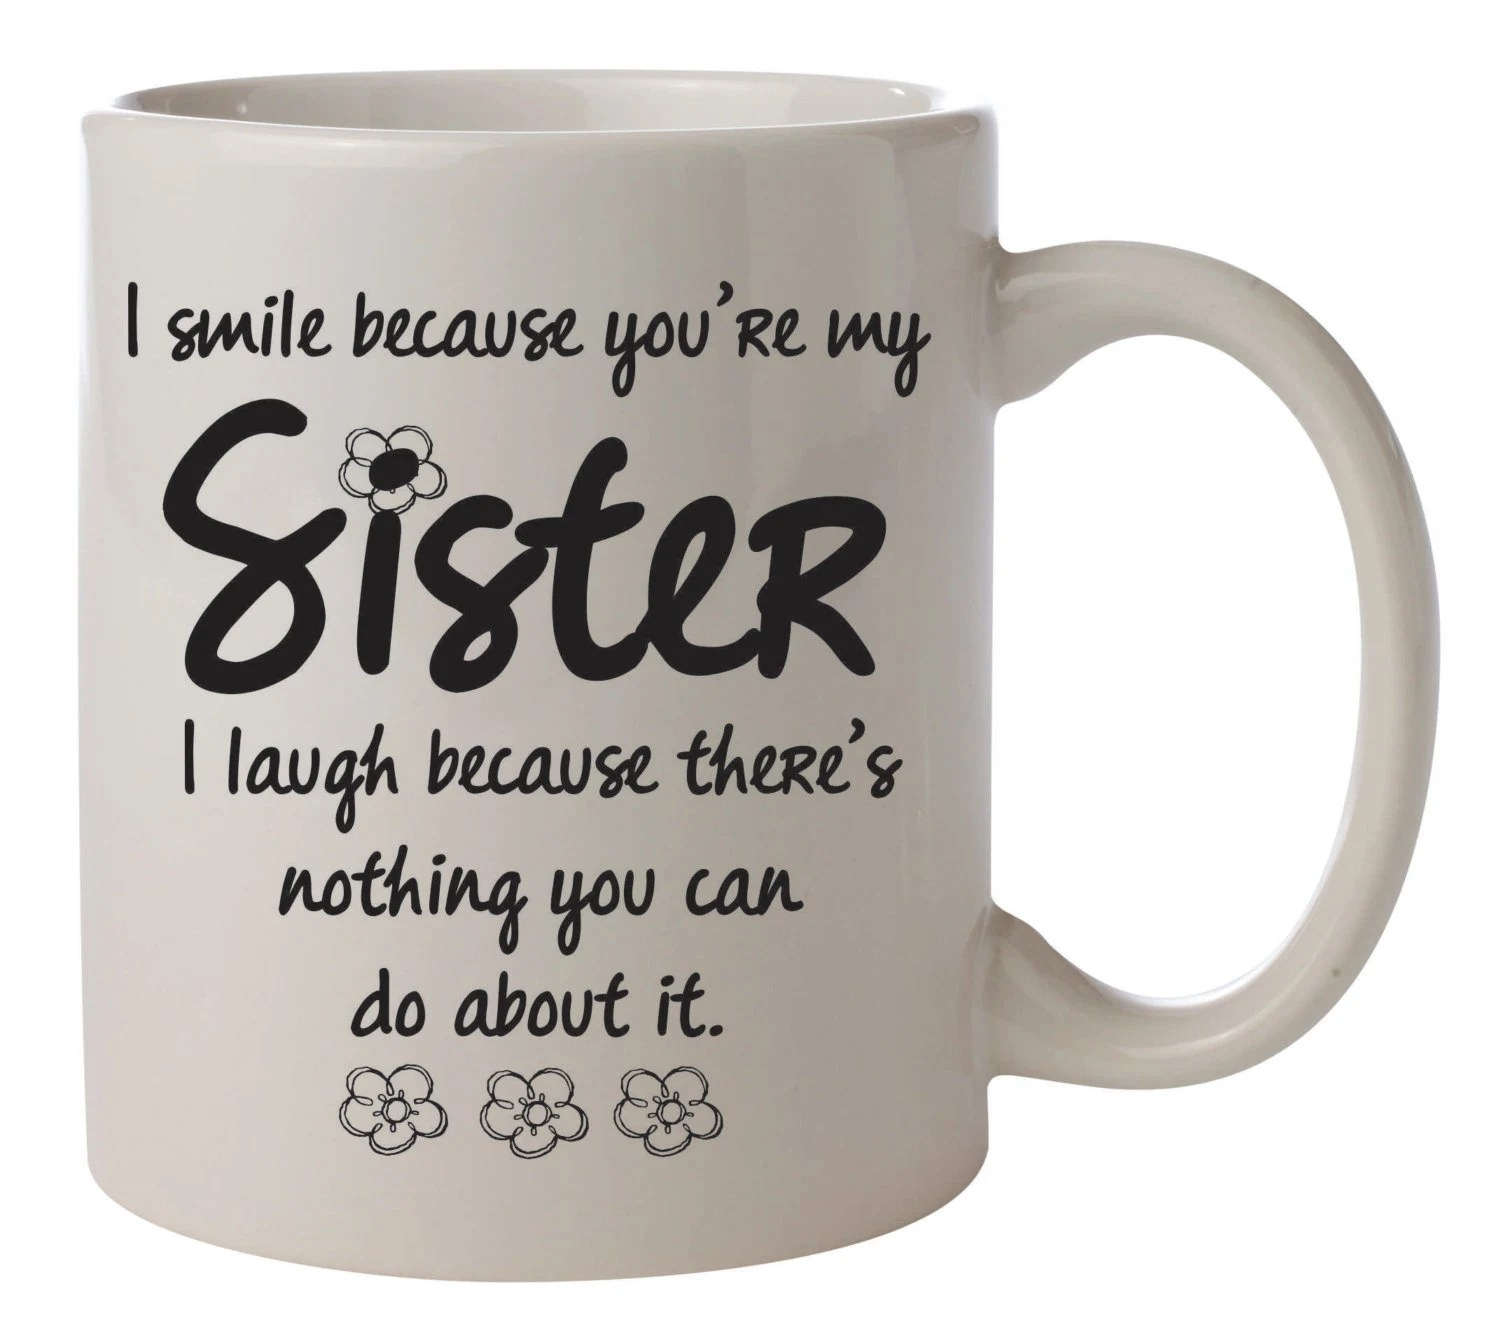 Because Nothing Sister Laugh Theres You Because Your Can You I My I About Do Love It